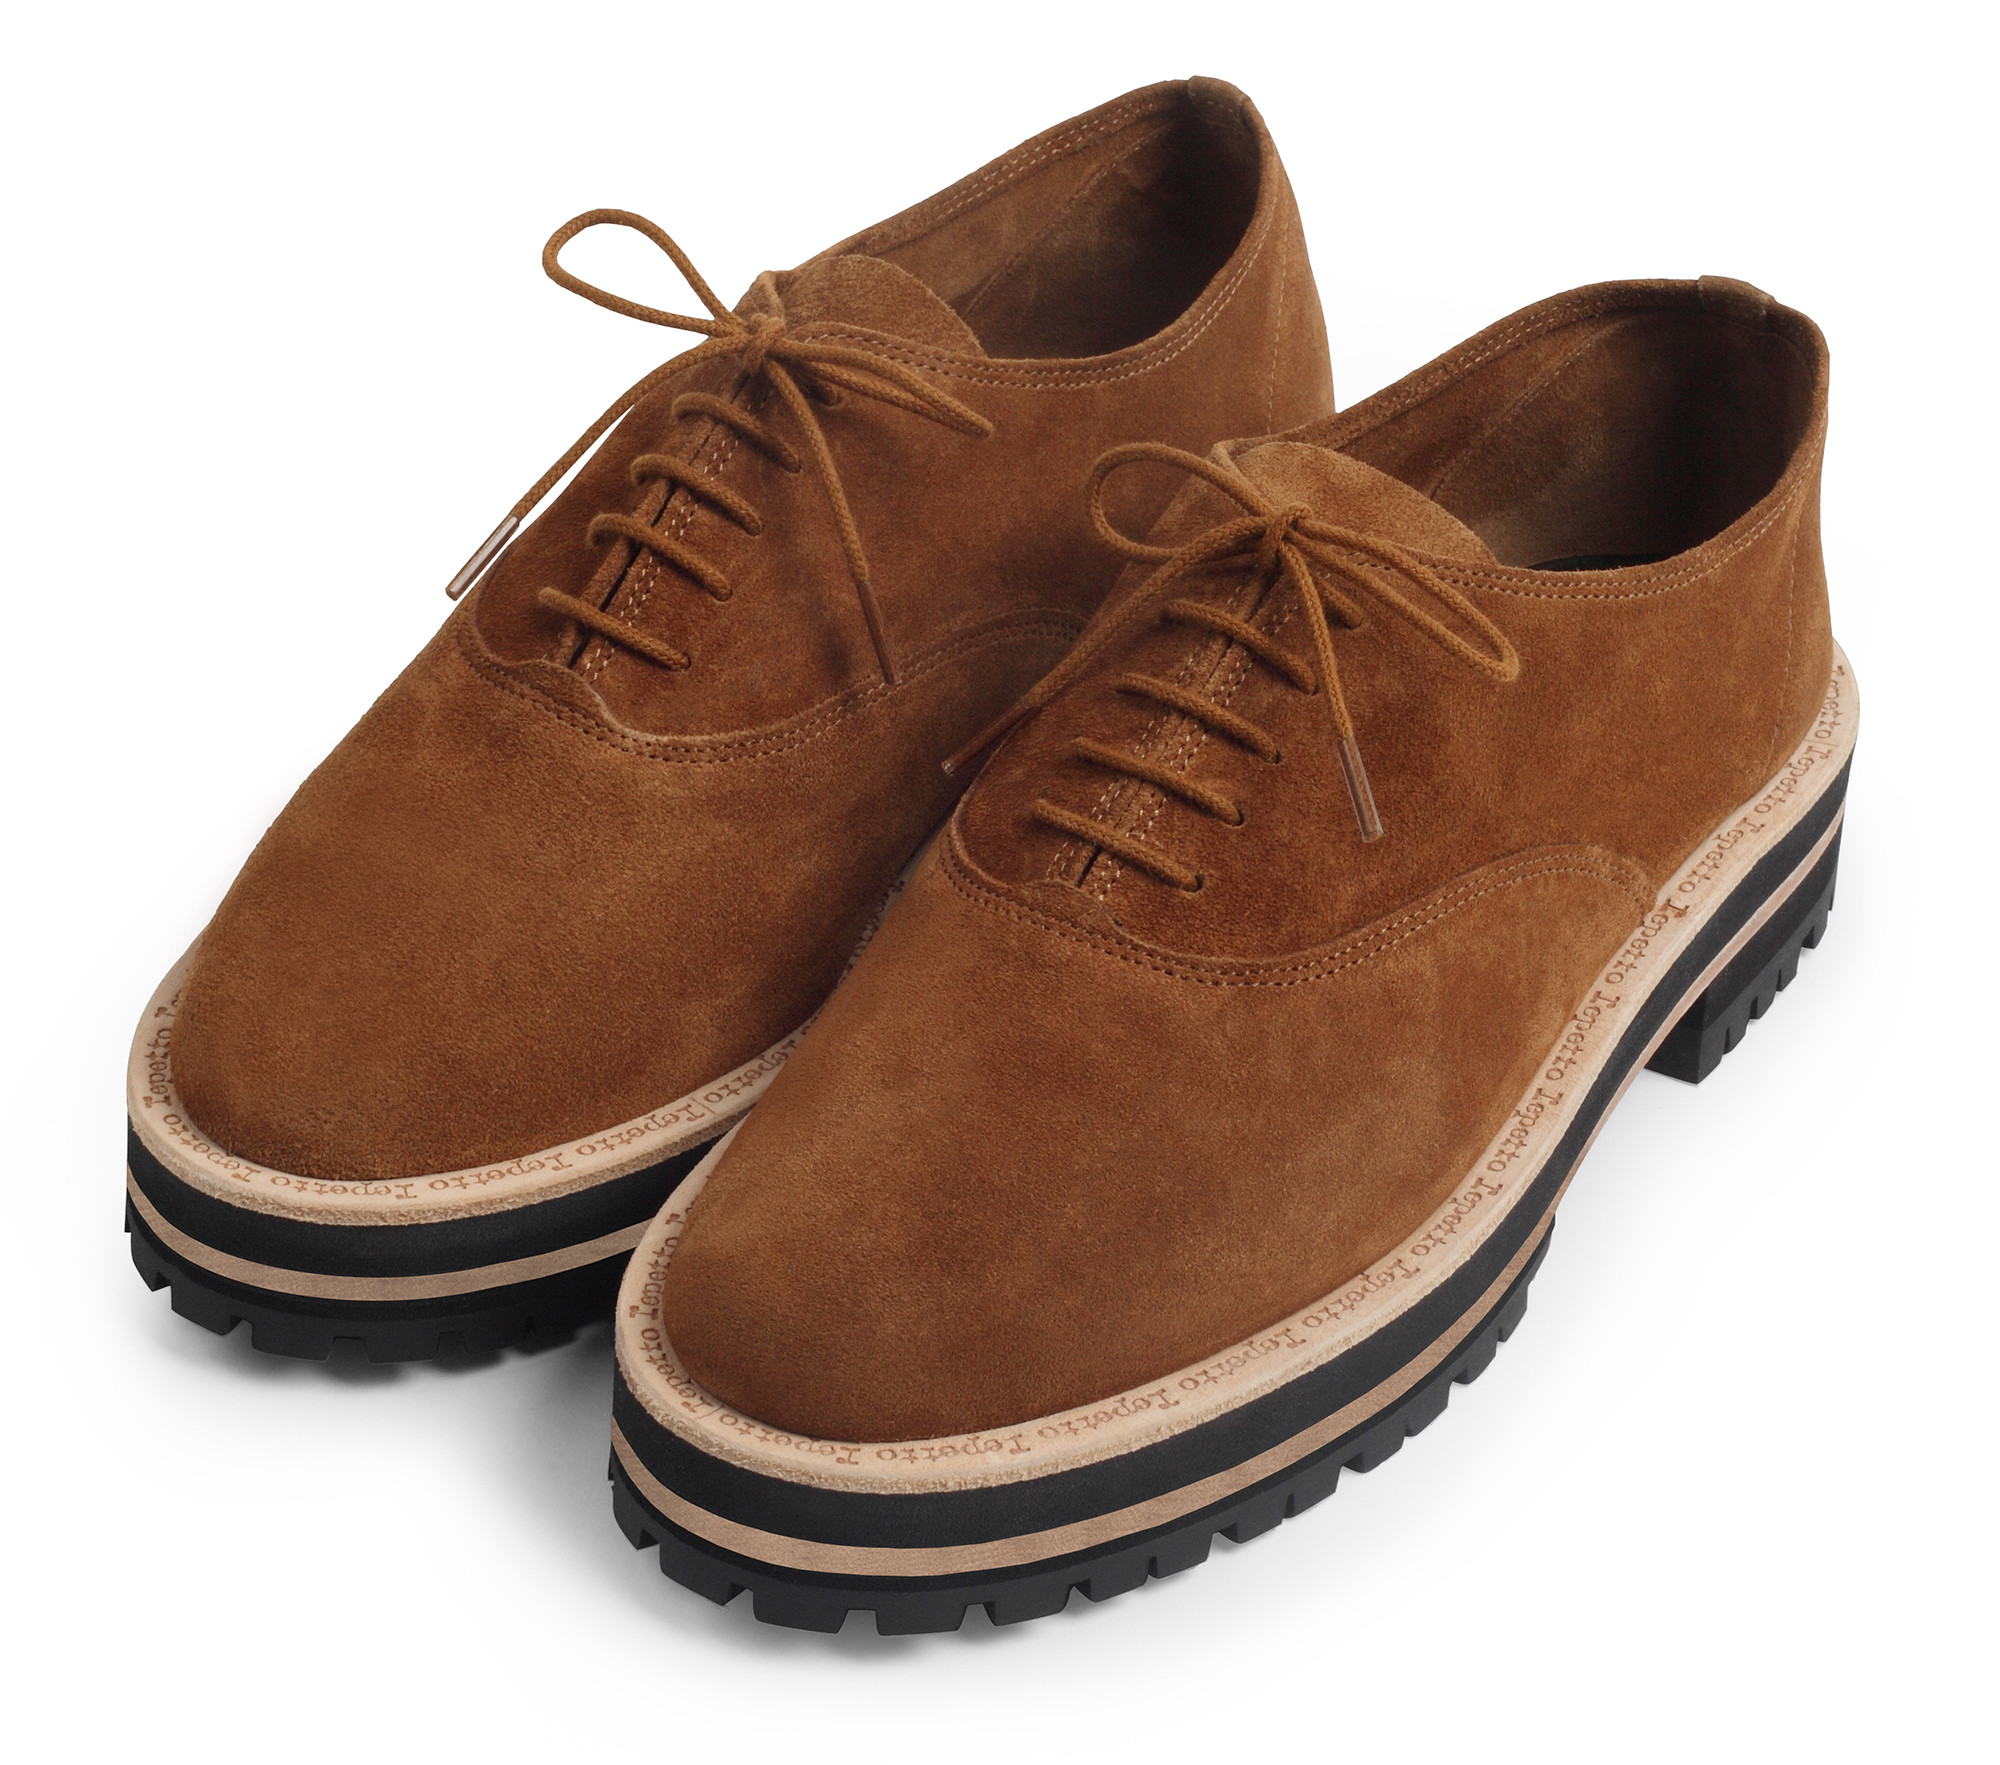 Gordon oxford shoes